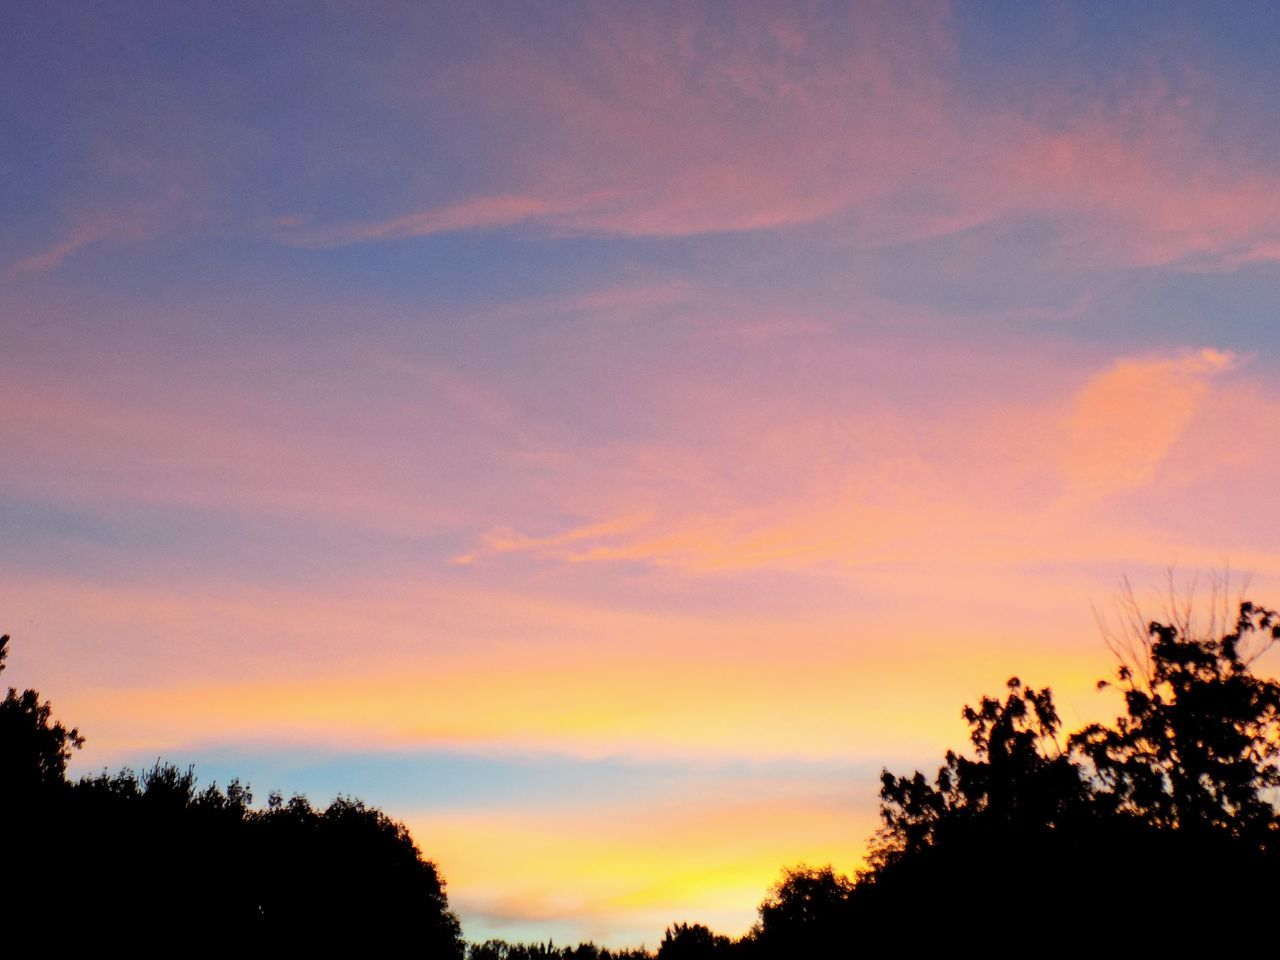 sunset, tree, silhouette, scenics, beauty in nature, nature, sky, tranquility, tranquil scene, no people, cloud - sky, outdoors, growth, day